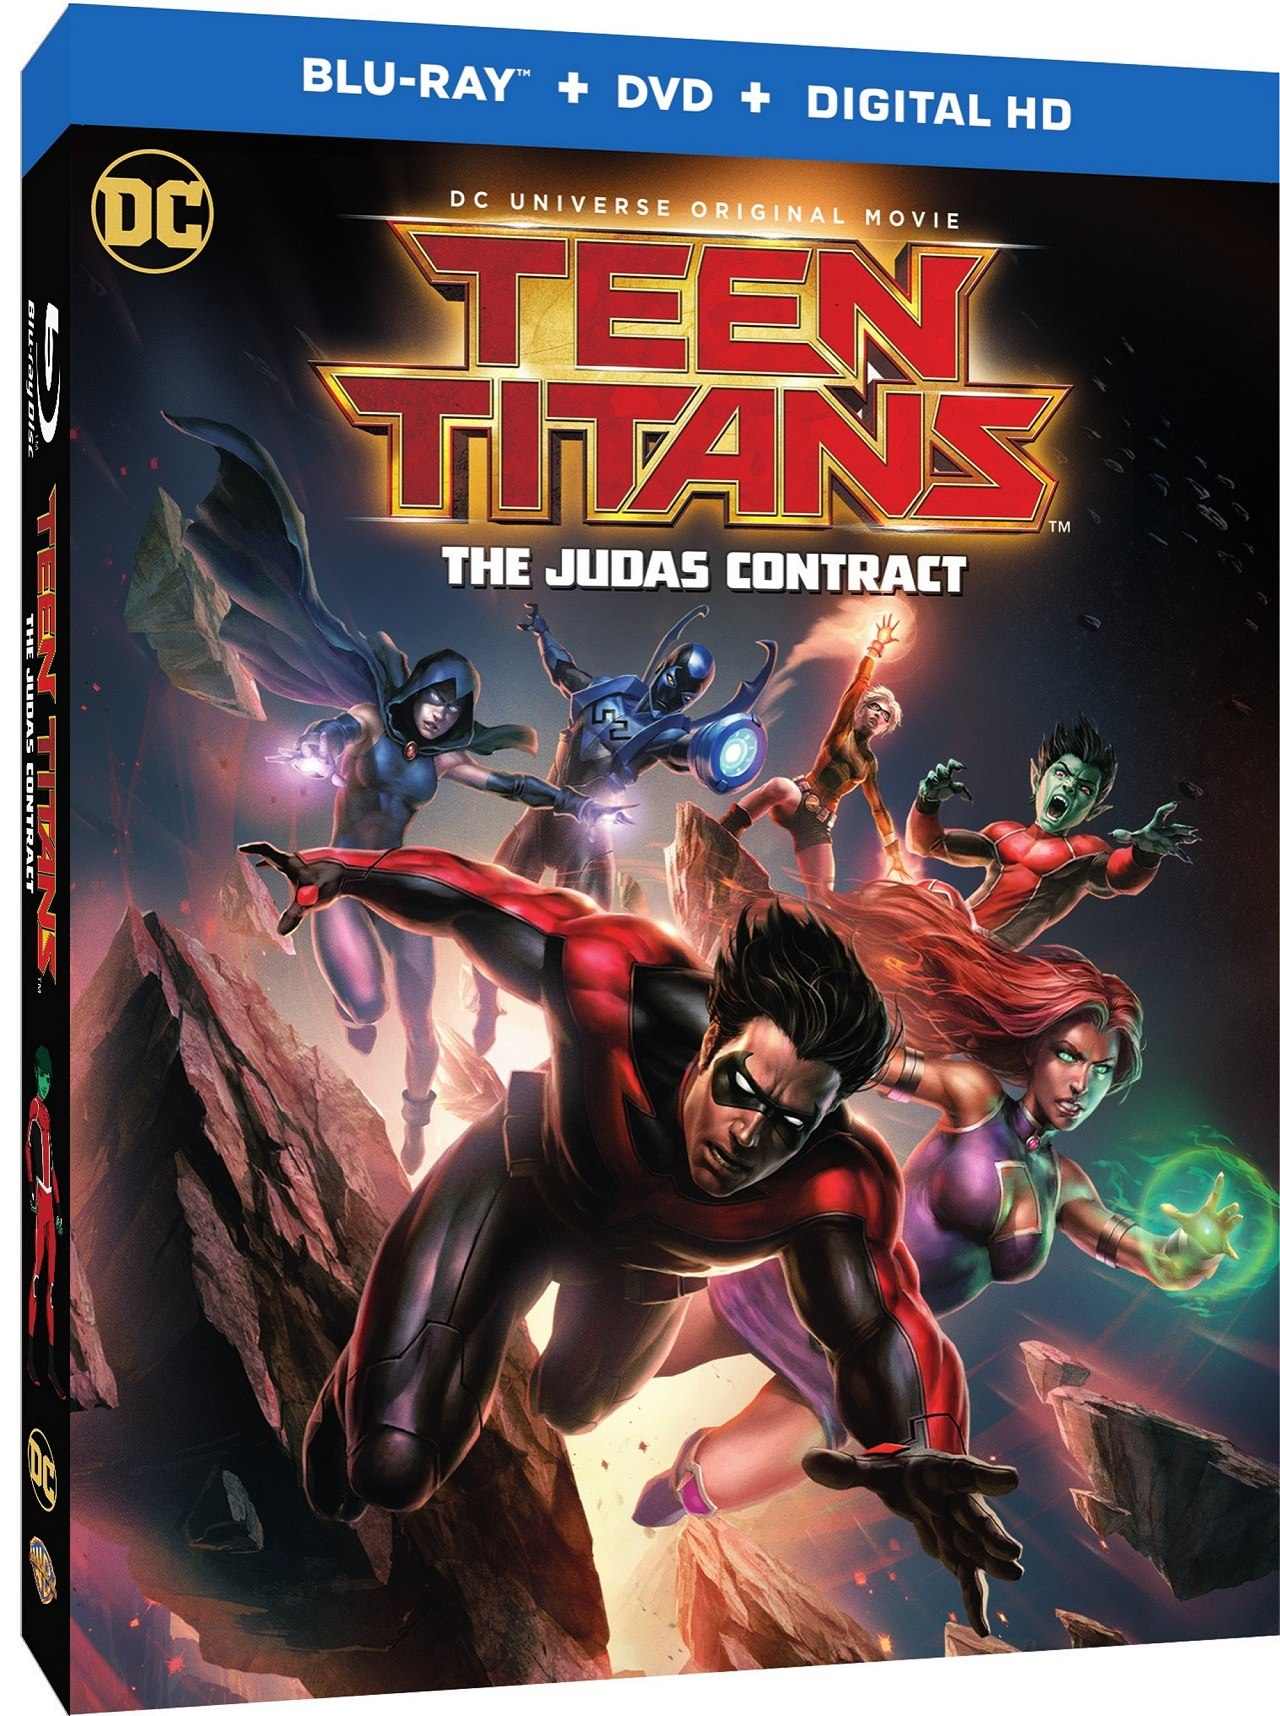 The landmark Teen Titans story will be available on Blu-ray Deluxe Giftset,  Blu-ray Combo Pack and DVD starting April 18, 2017.